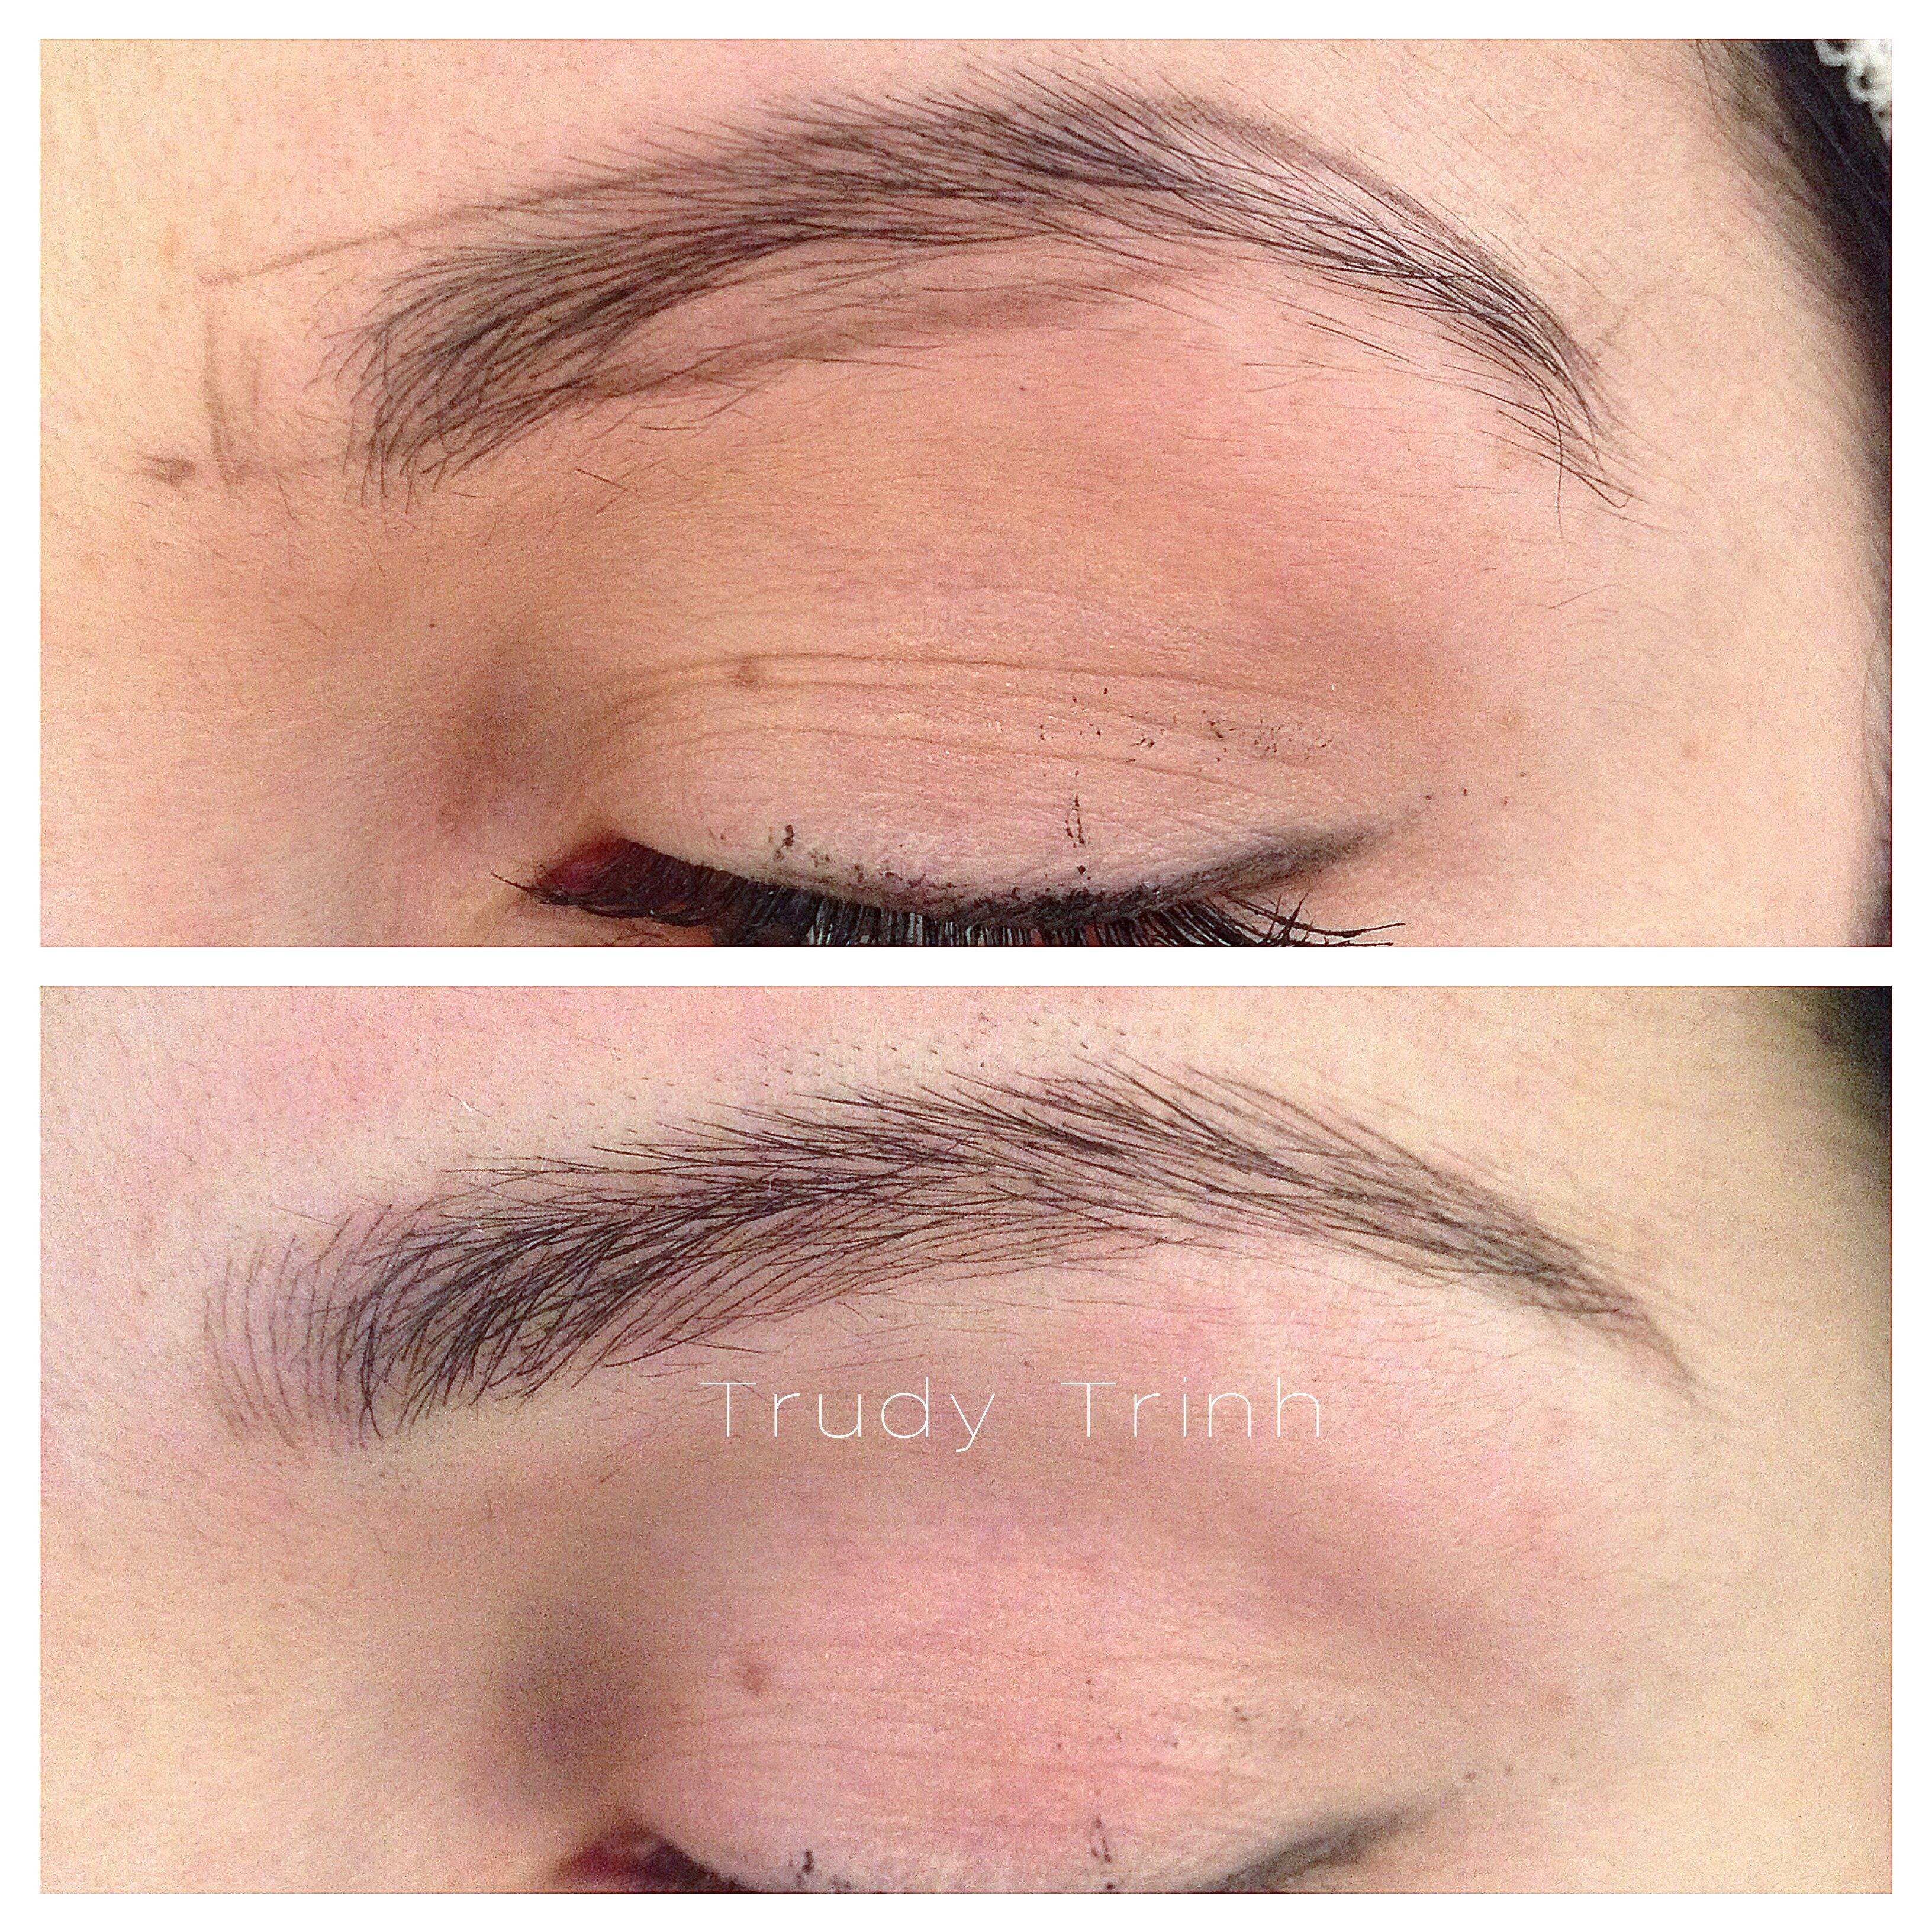 Microblading hairstrokes to create a longer, more flattering eyebrow. www.naturalimpressions.biz